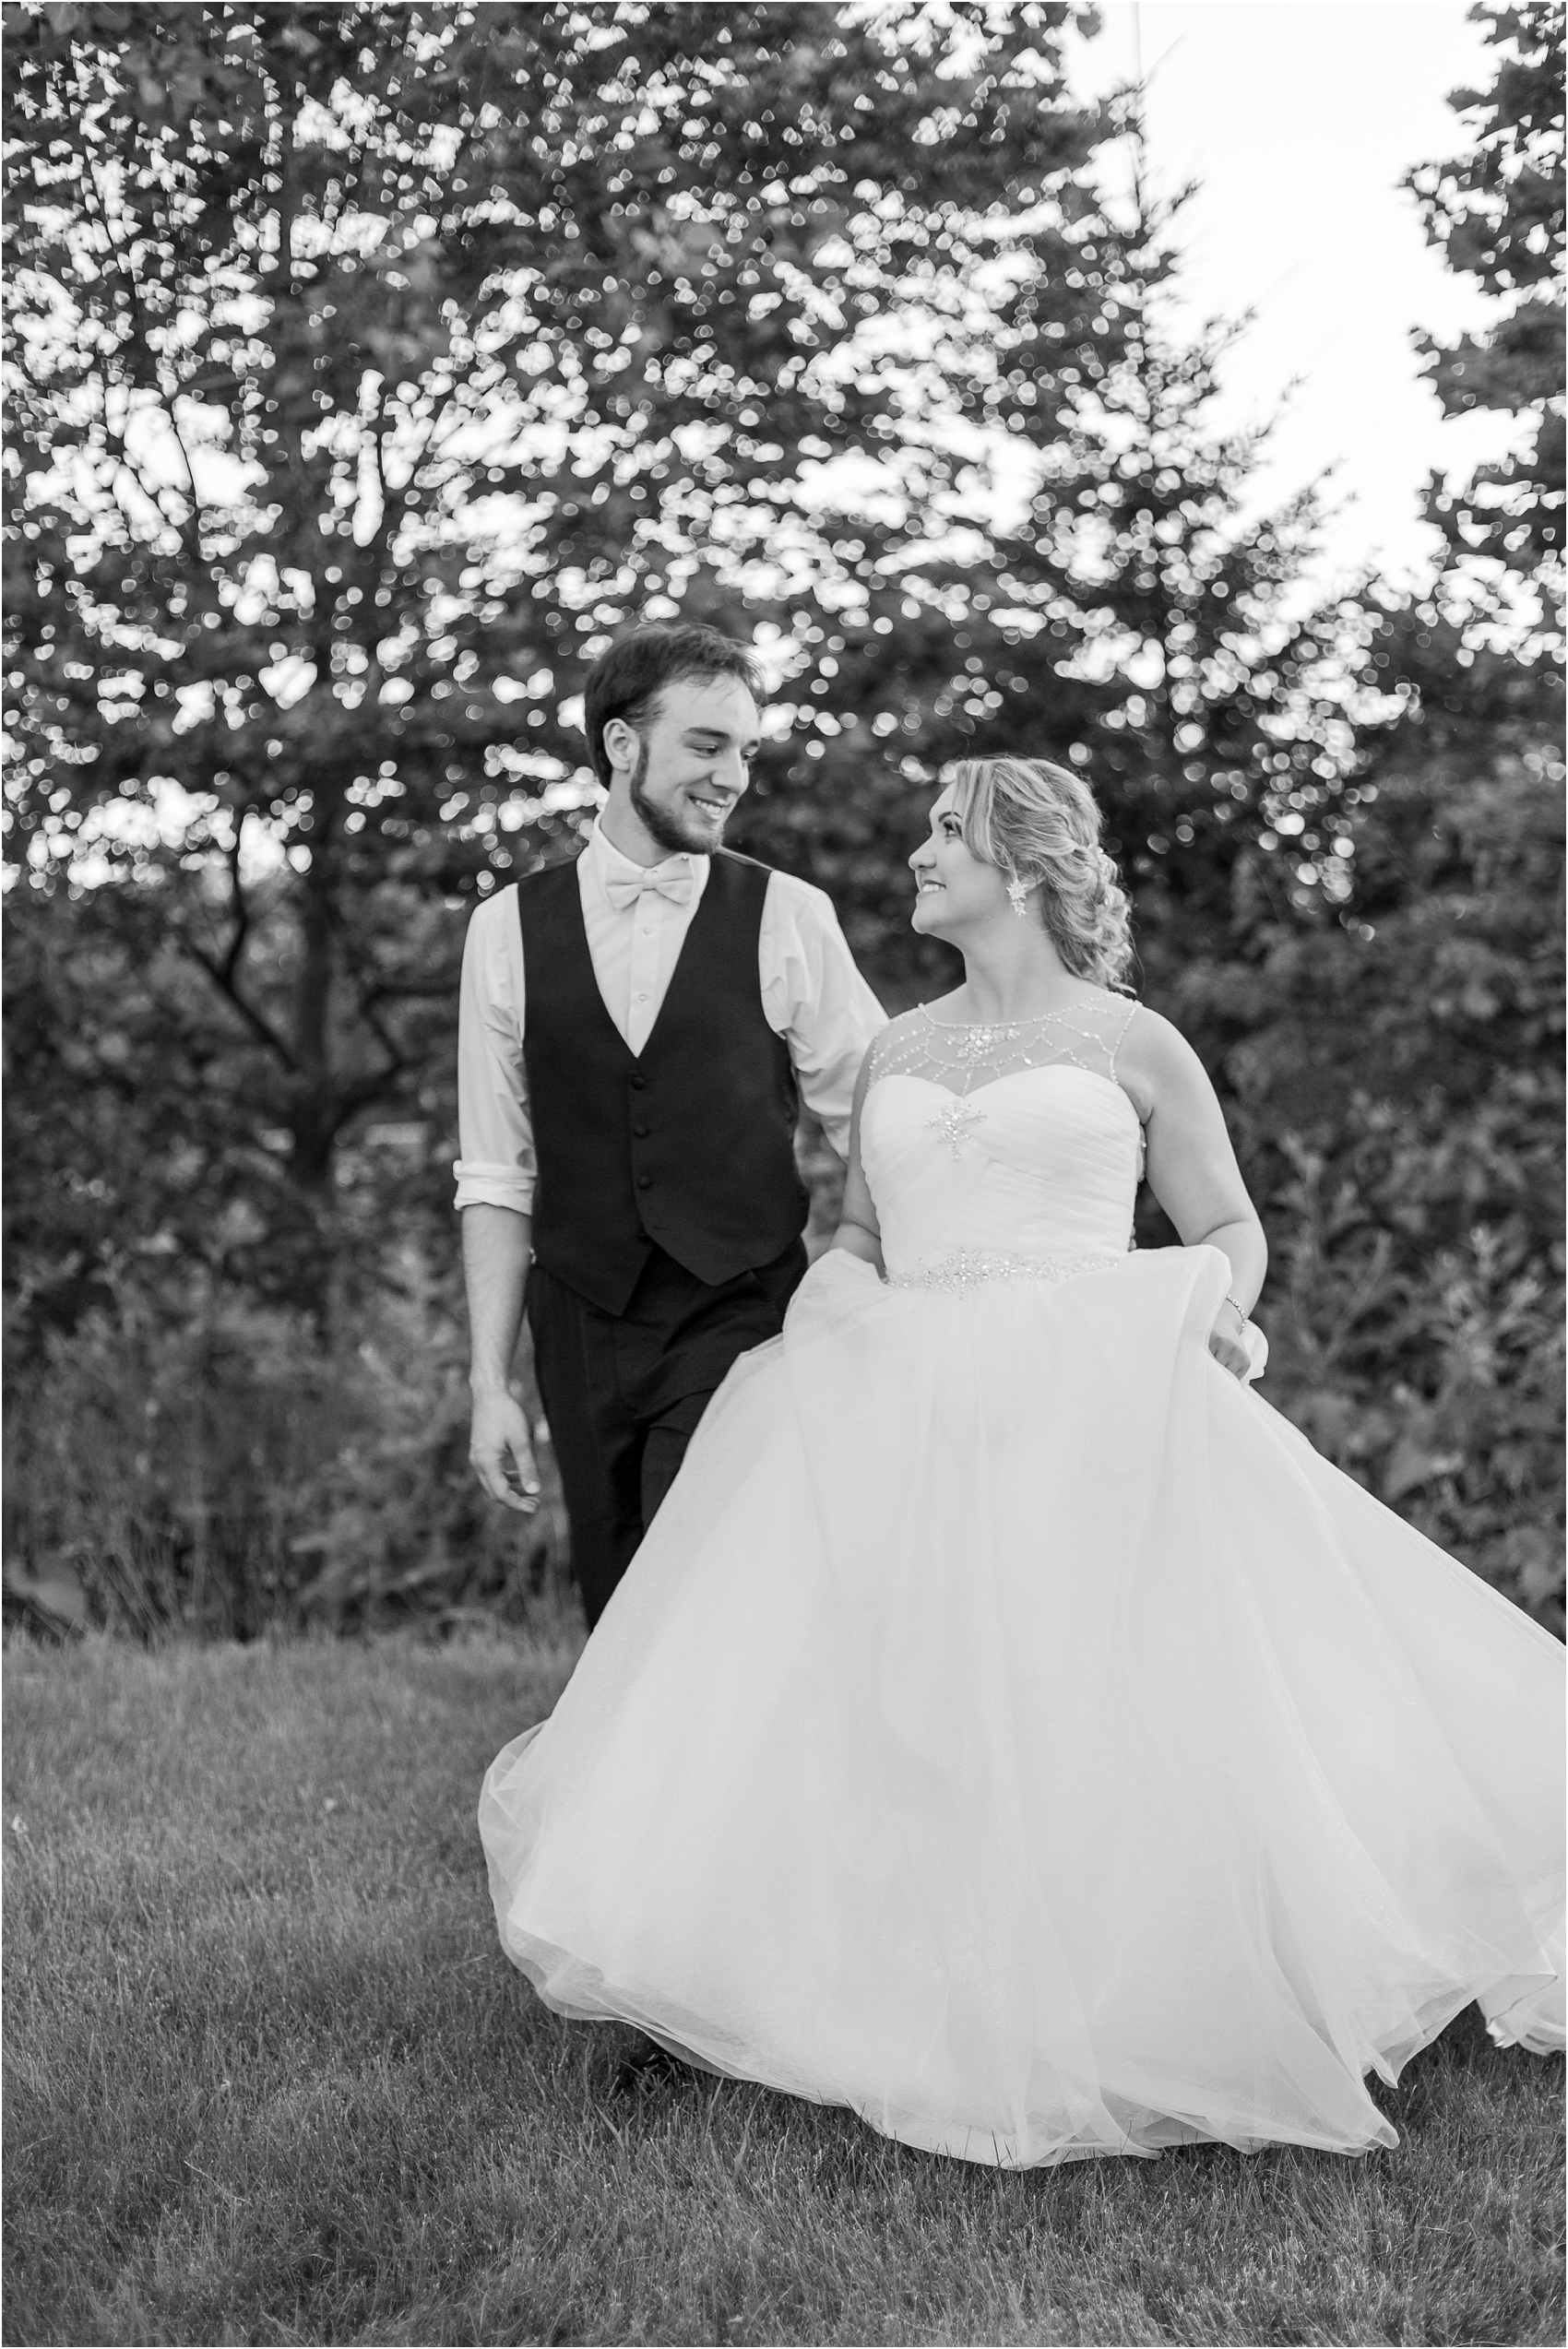 lord-of-the-rings-inspired-wedding-photos-at-crystal-gardens-in-howell-mi-by-courtney-carolyn-photography_0120.jpg